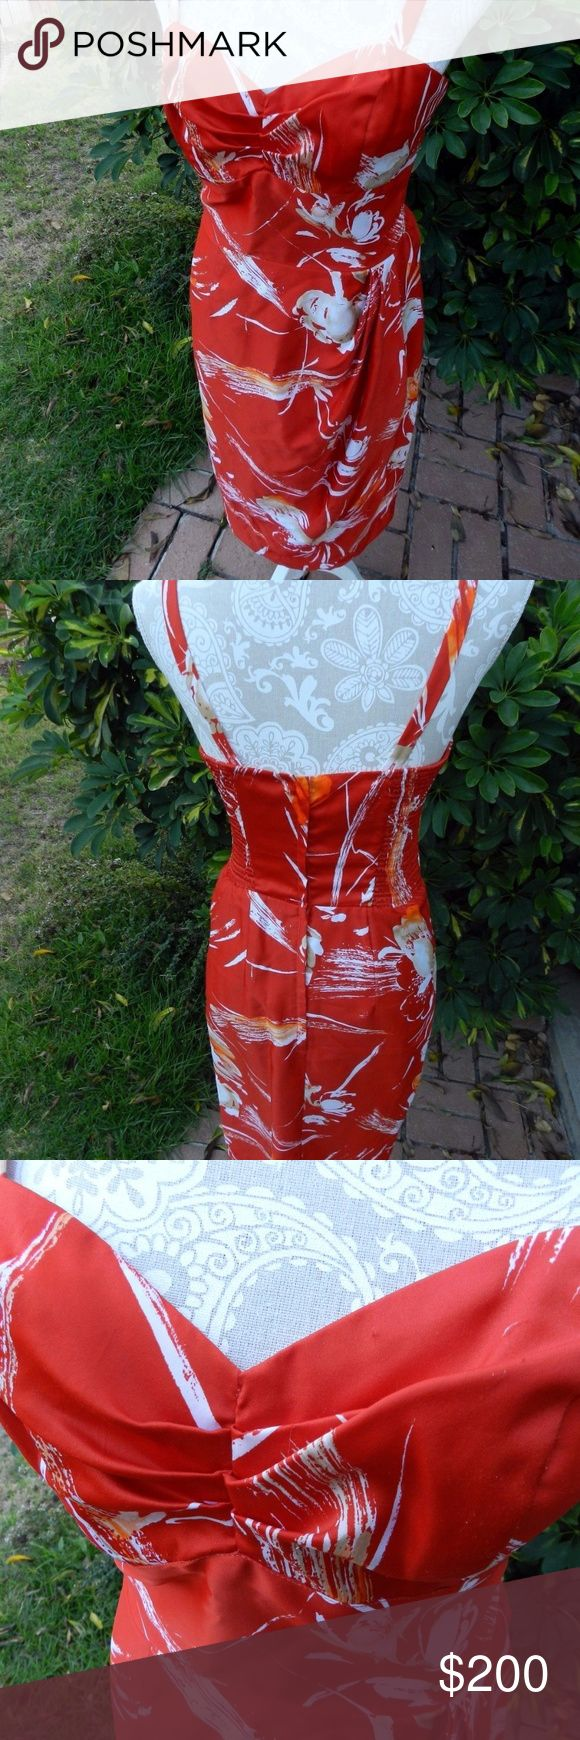 "VTG Paradise Hawaii Red Sexy Sarong Pinup Dress 10 Authentic vintage 60s hawaiian print wrap dress by Paradise Hawaii.  Spaghetti strap style Boning to structure the Bustier style bodice top. Detachable straps for cross back or halter Cinched sweetheart neckline Wrap skirt Made in Honolulu Sateen poly blend fabric  Dress is in excellent vintage condition. SUPER RARE. please see photo for small snags  Marked Vintage Size 10  Flat Measurements Bust 16"" Waist 12.5"" Hips 19"" Top of Bust to…"